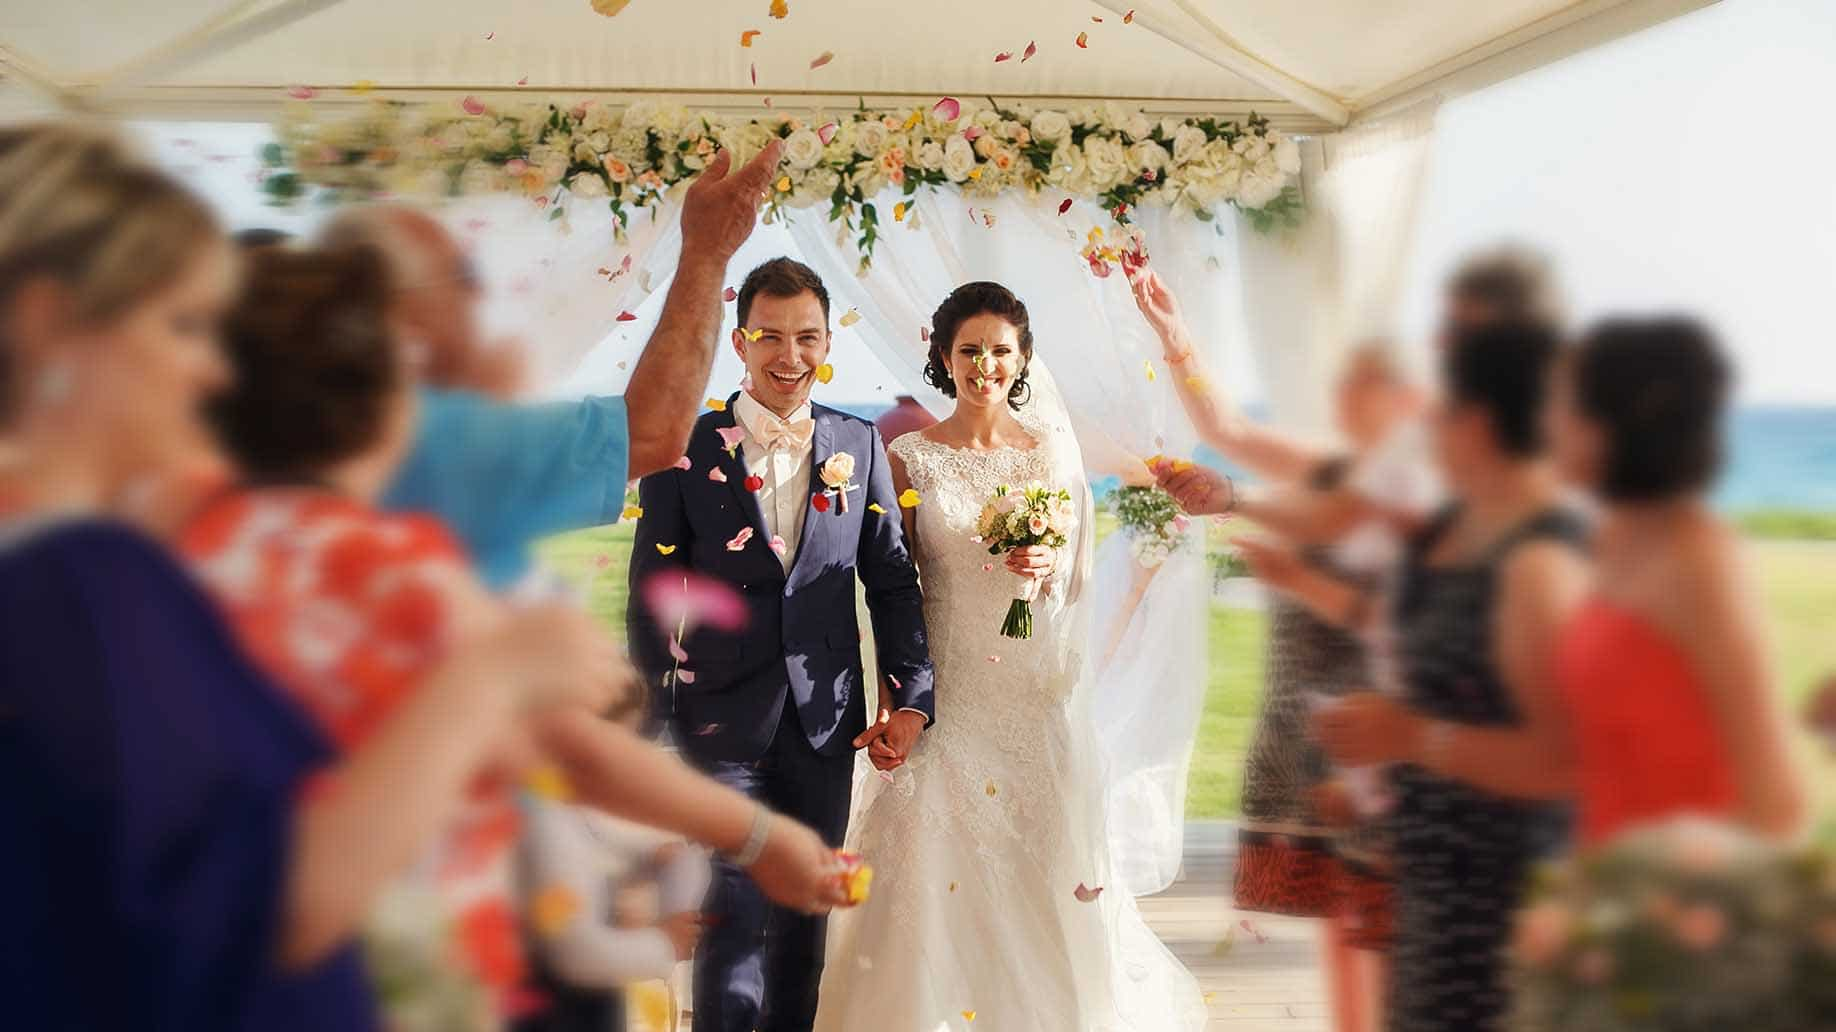 Ceremony Songs For Wedding Party: 10 Ideas To Save Money On Wedding Ceremony & Reception